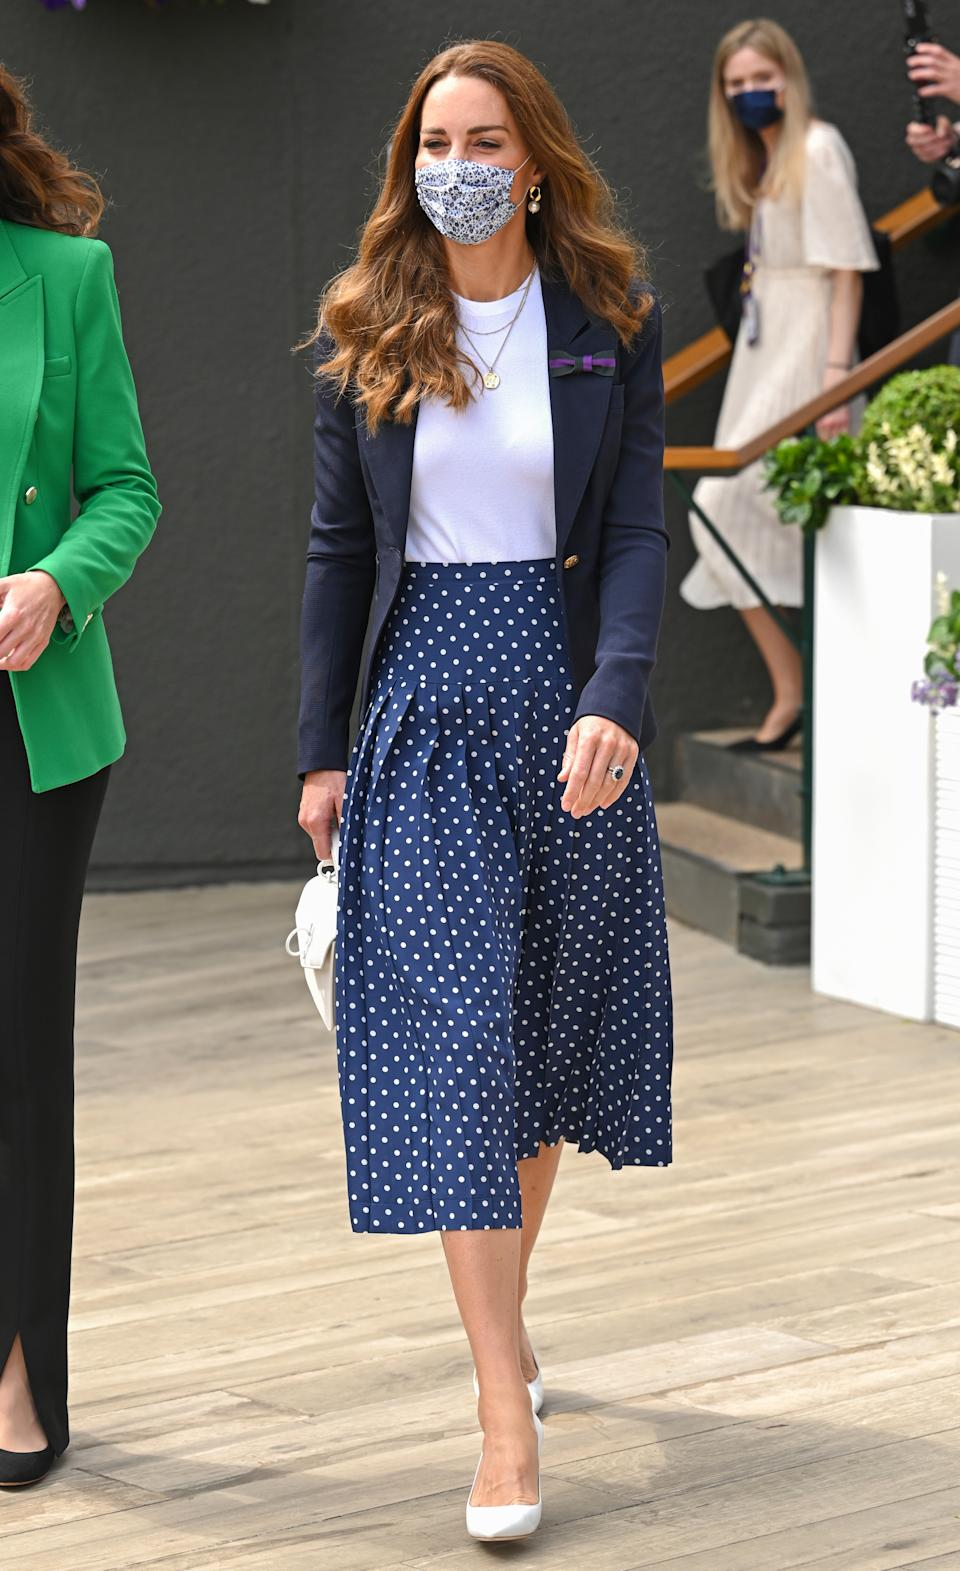 LONDON, ENGLAND - JULY 02: Catherine, Duchess of Cambridge attends Wimbledon Championships Tennis Tournament at All England Lawn Tennis and Croquet Club on July 02, 2021 in London, England. (Photo by Karwai Tang/WireImage)